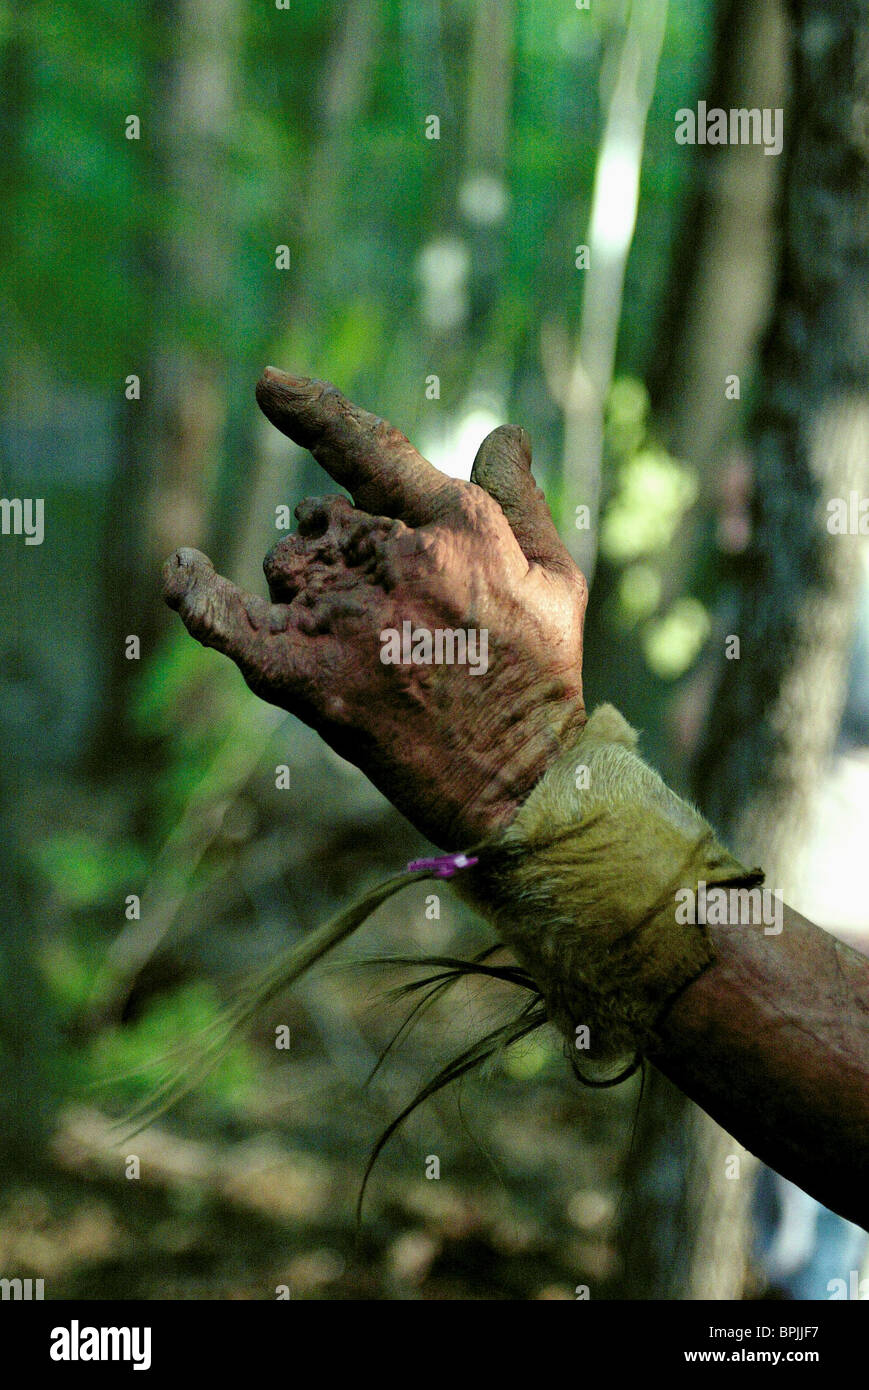 DISFIGURED HAND WRONG TURN (2003) - Stock Image